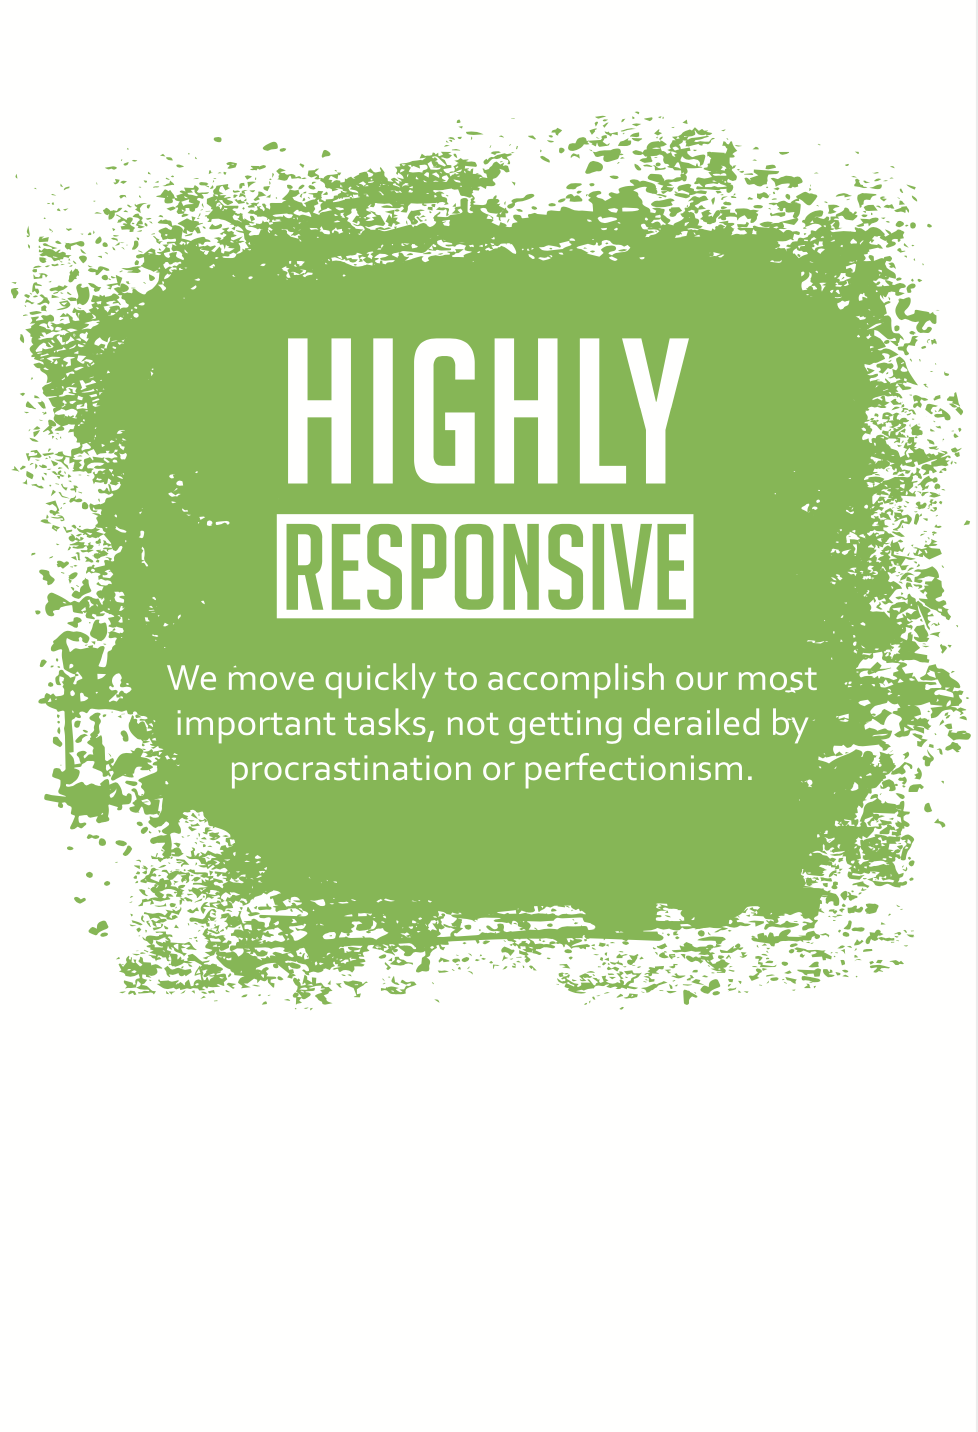 Harvest Wealth Group Core Values- Highly Responsive